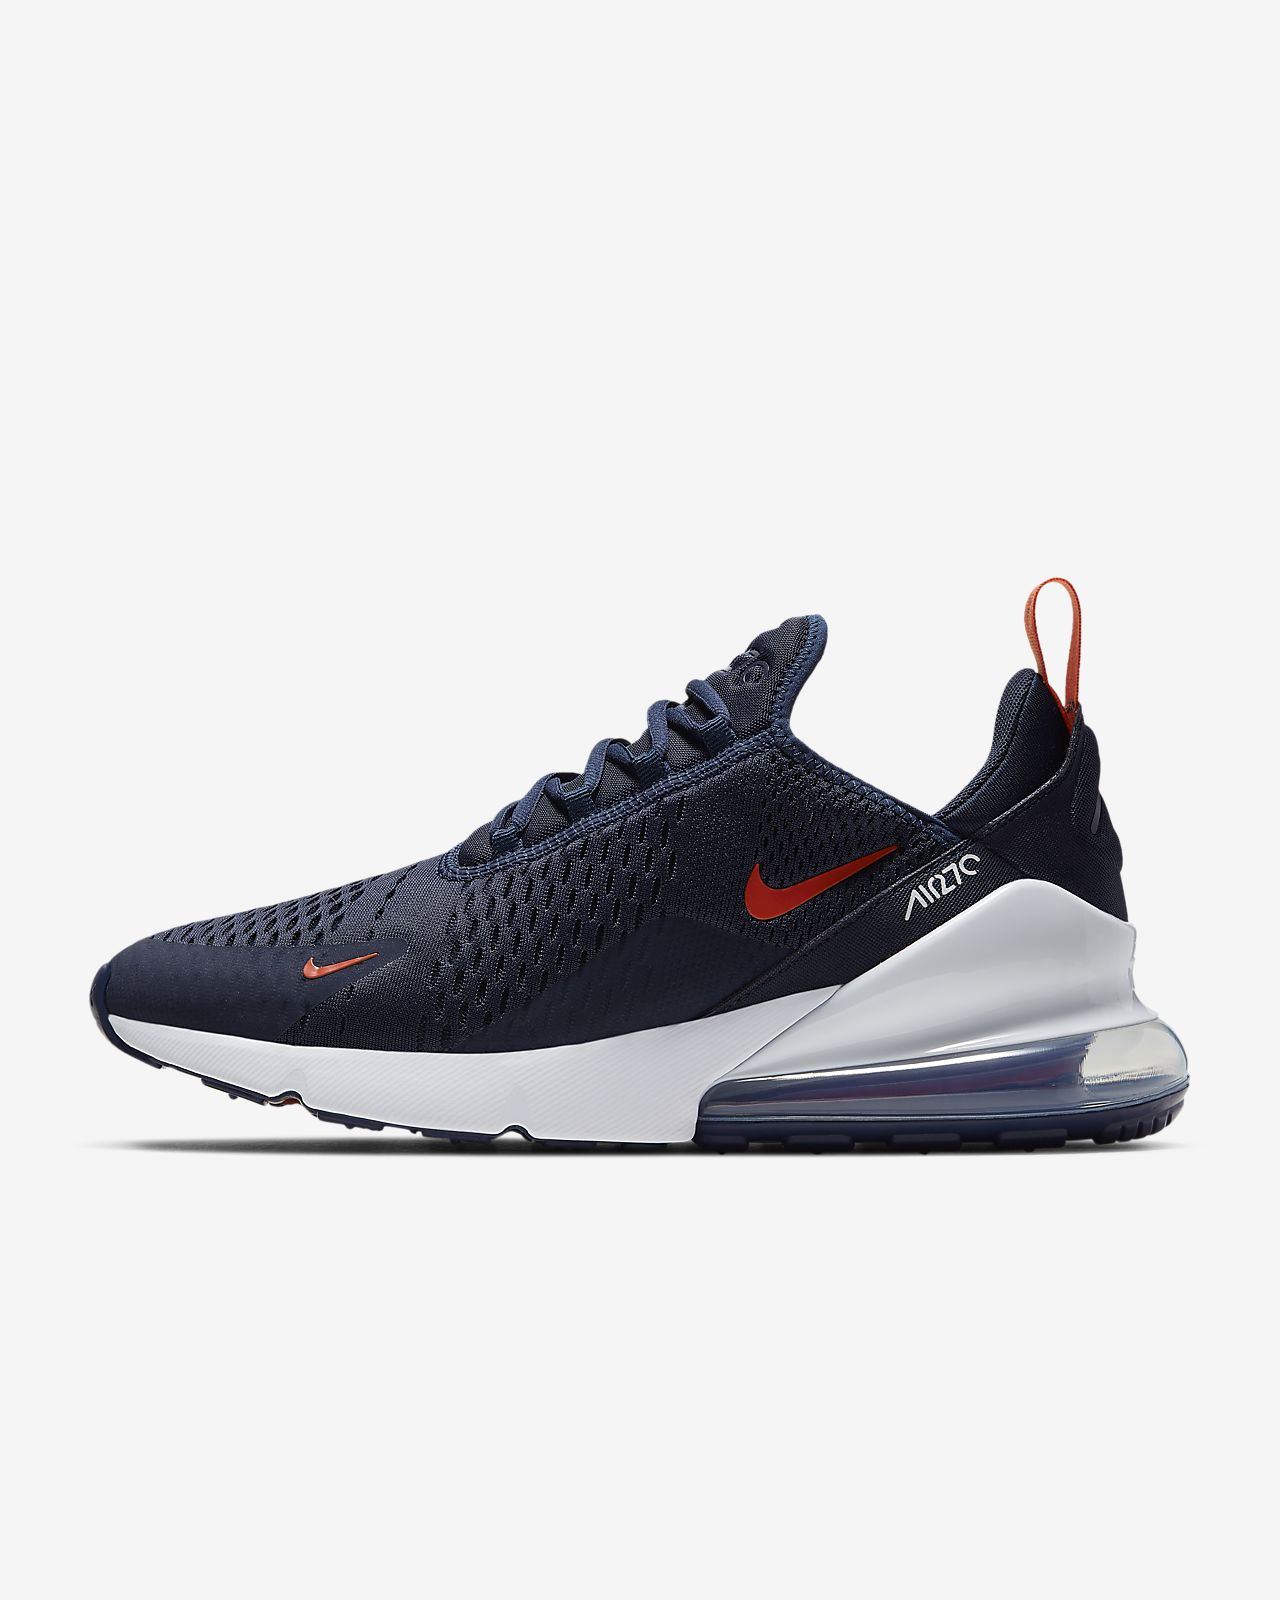 low priced 026d5 2c7d8 ... Buty męskie Nike Air Max 270